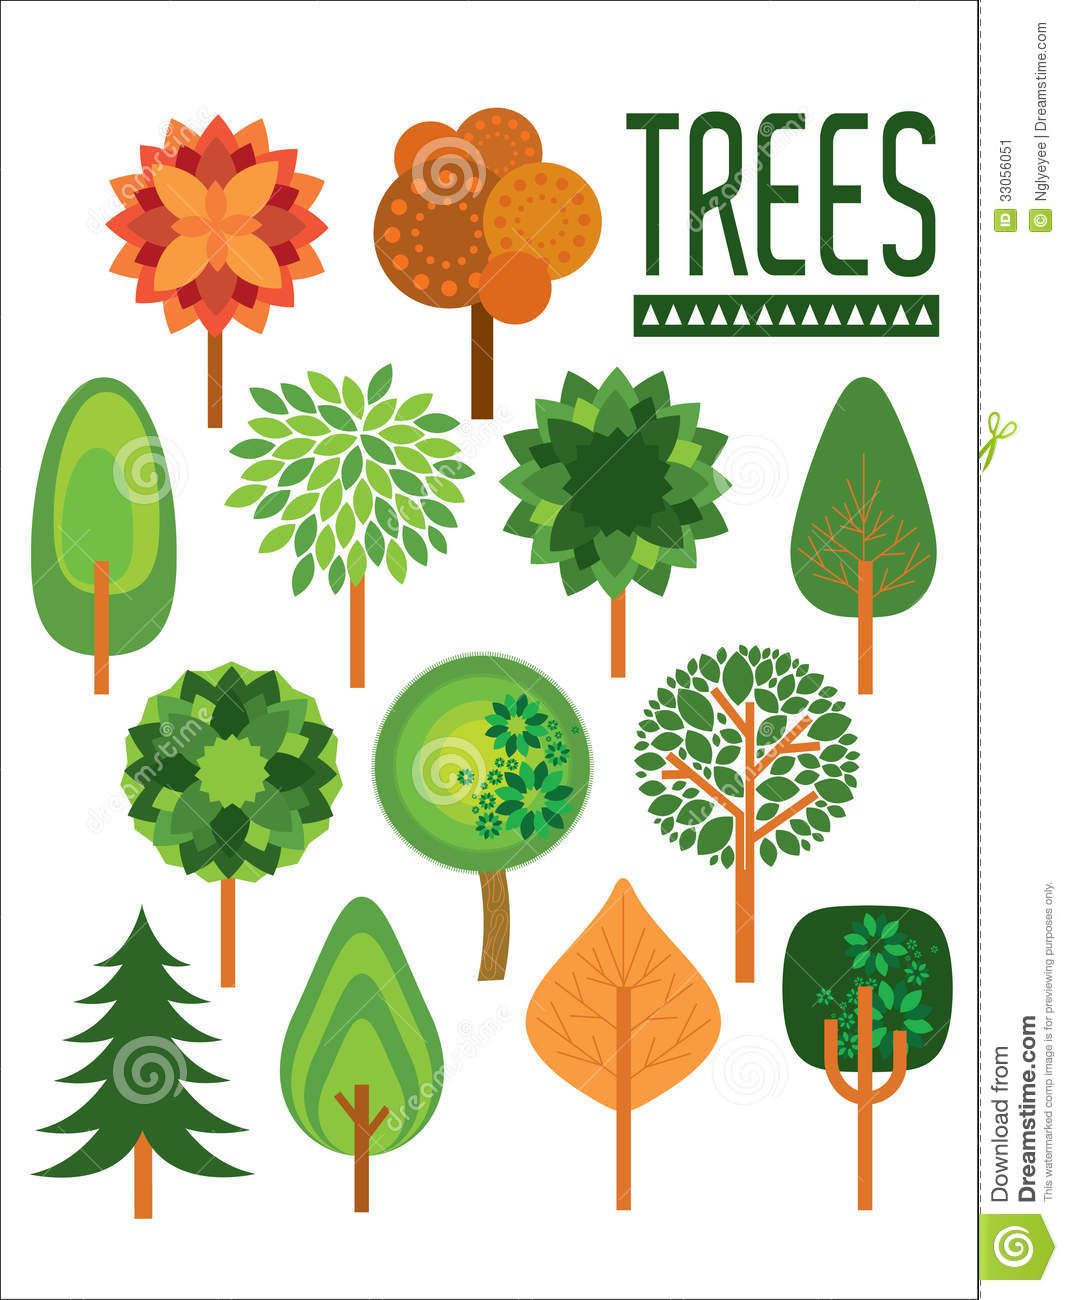 Plants and trees illustration stock illustration image for Different types of plants and trees